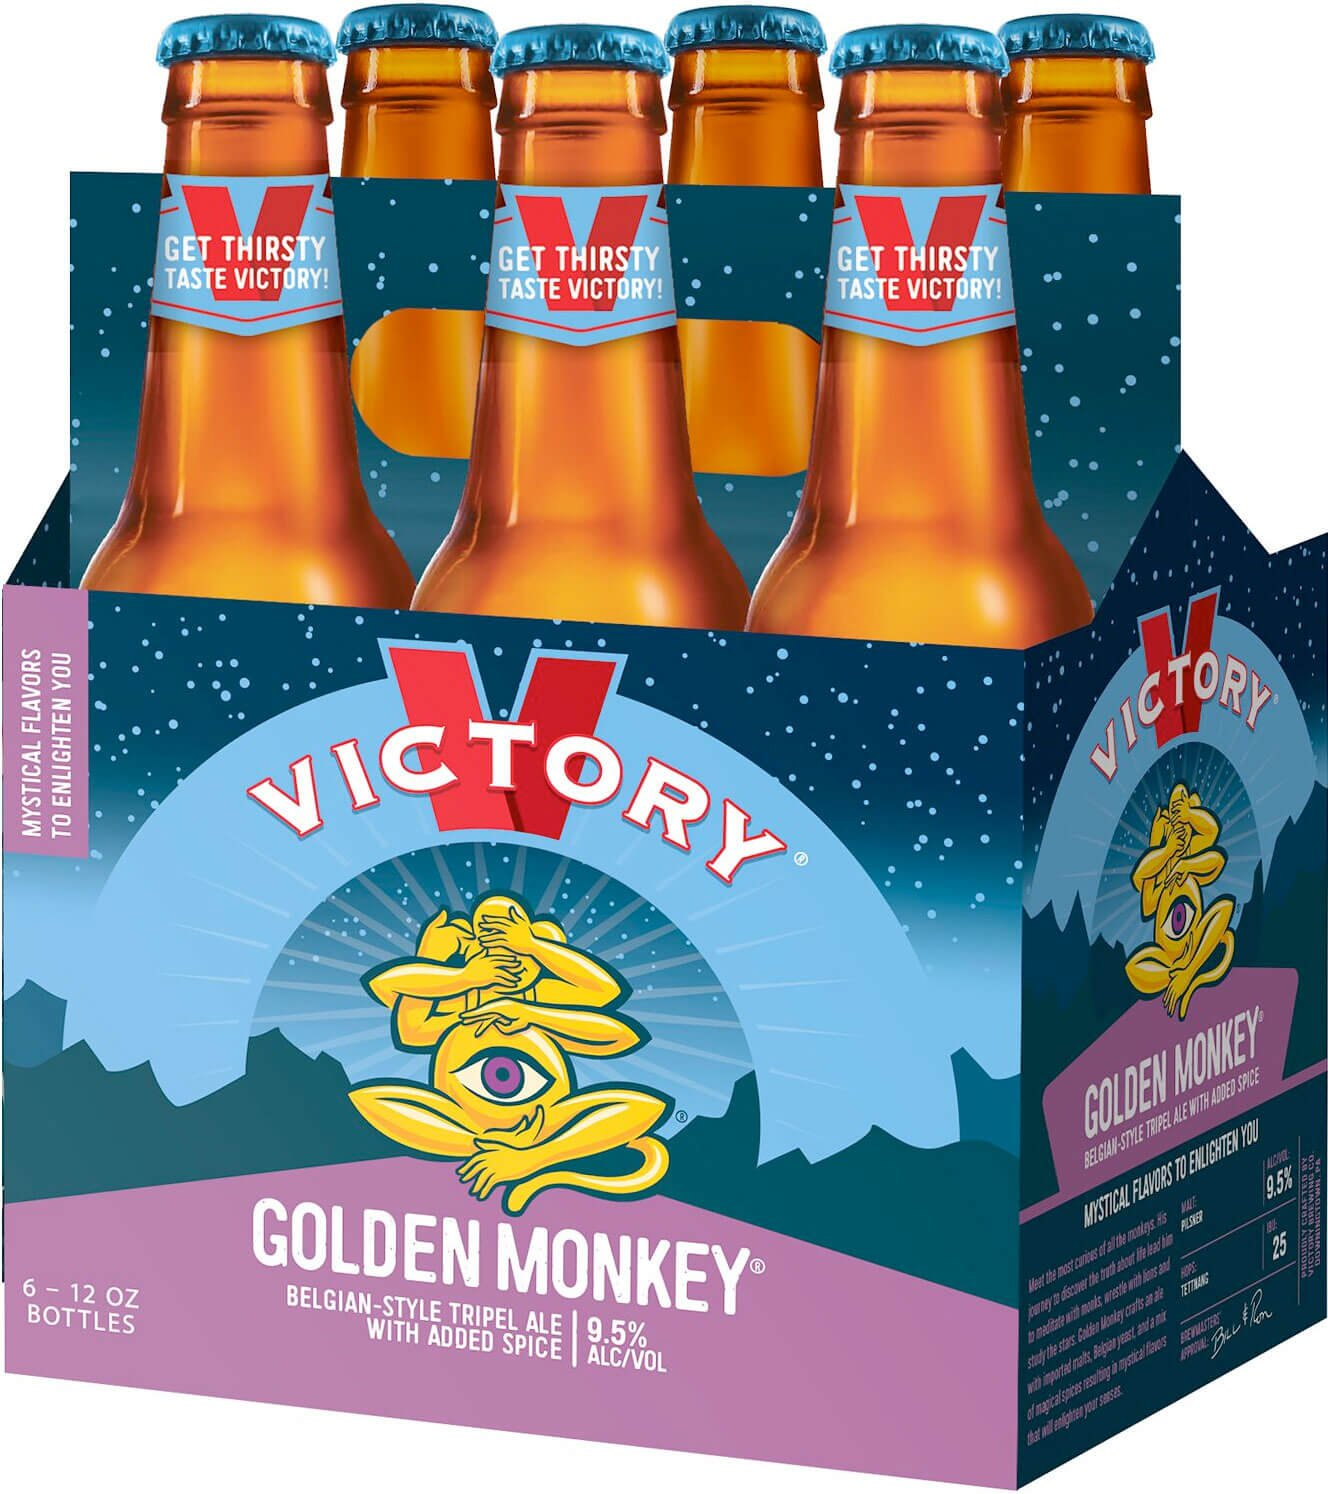 Packaging art for the Golden Monkey by Victory Brewing Company